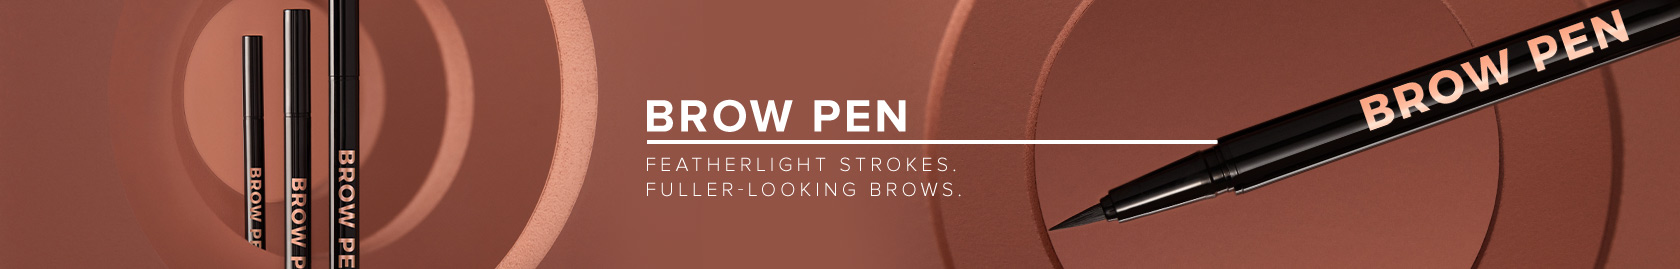 Brow Pen - feather like strokes. fuller looking brows